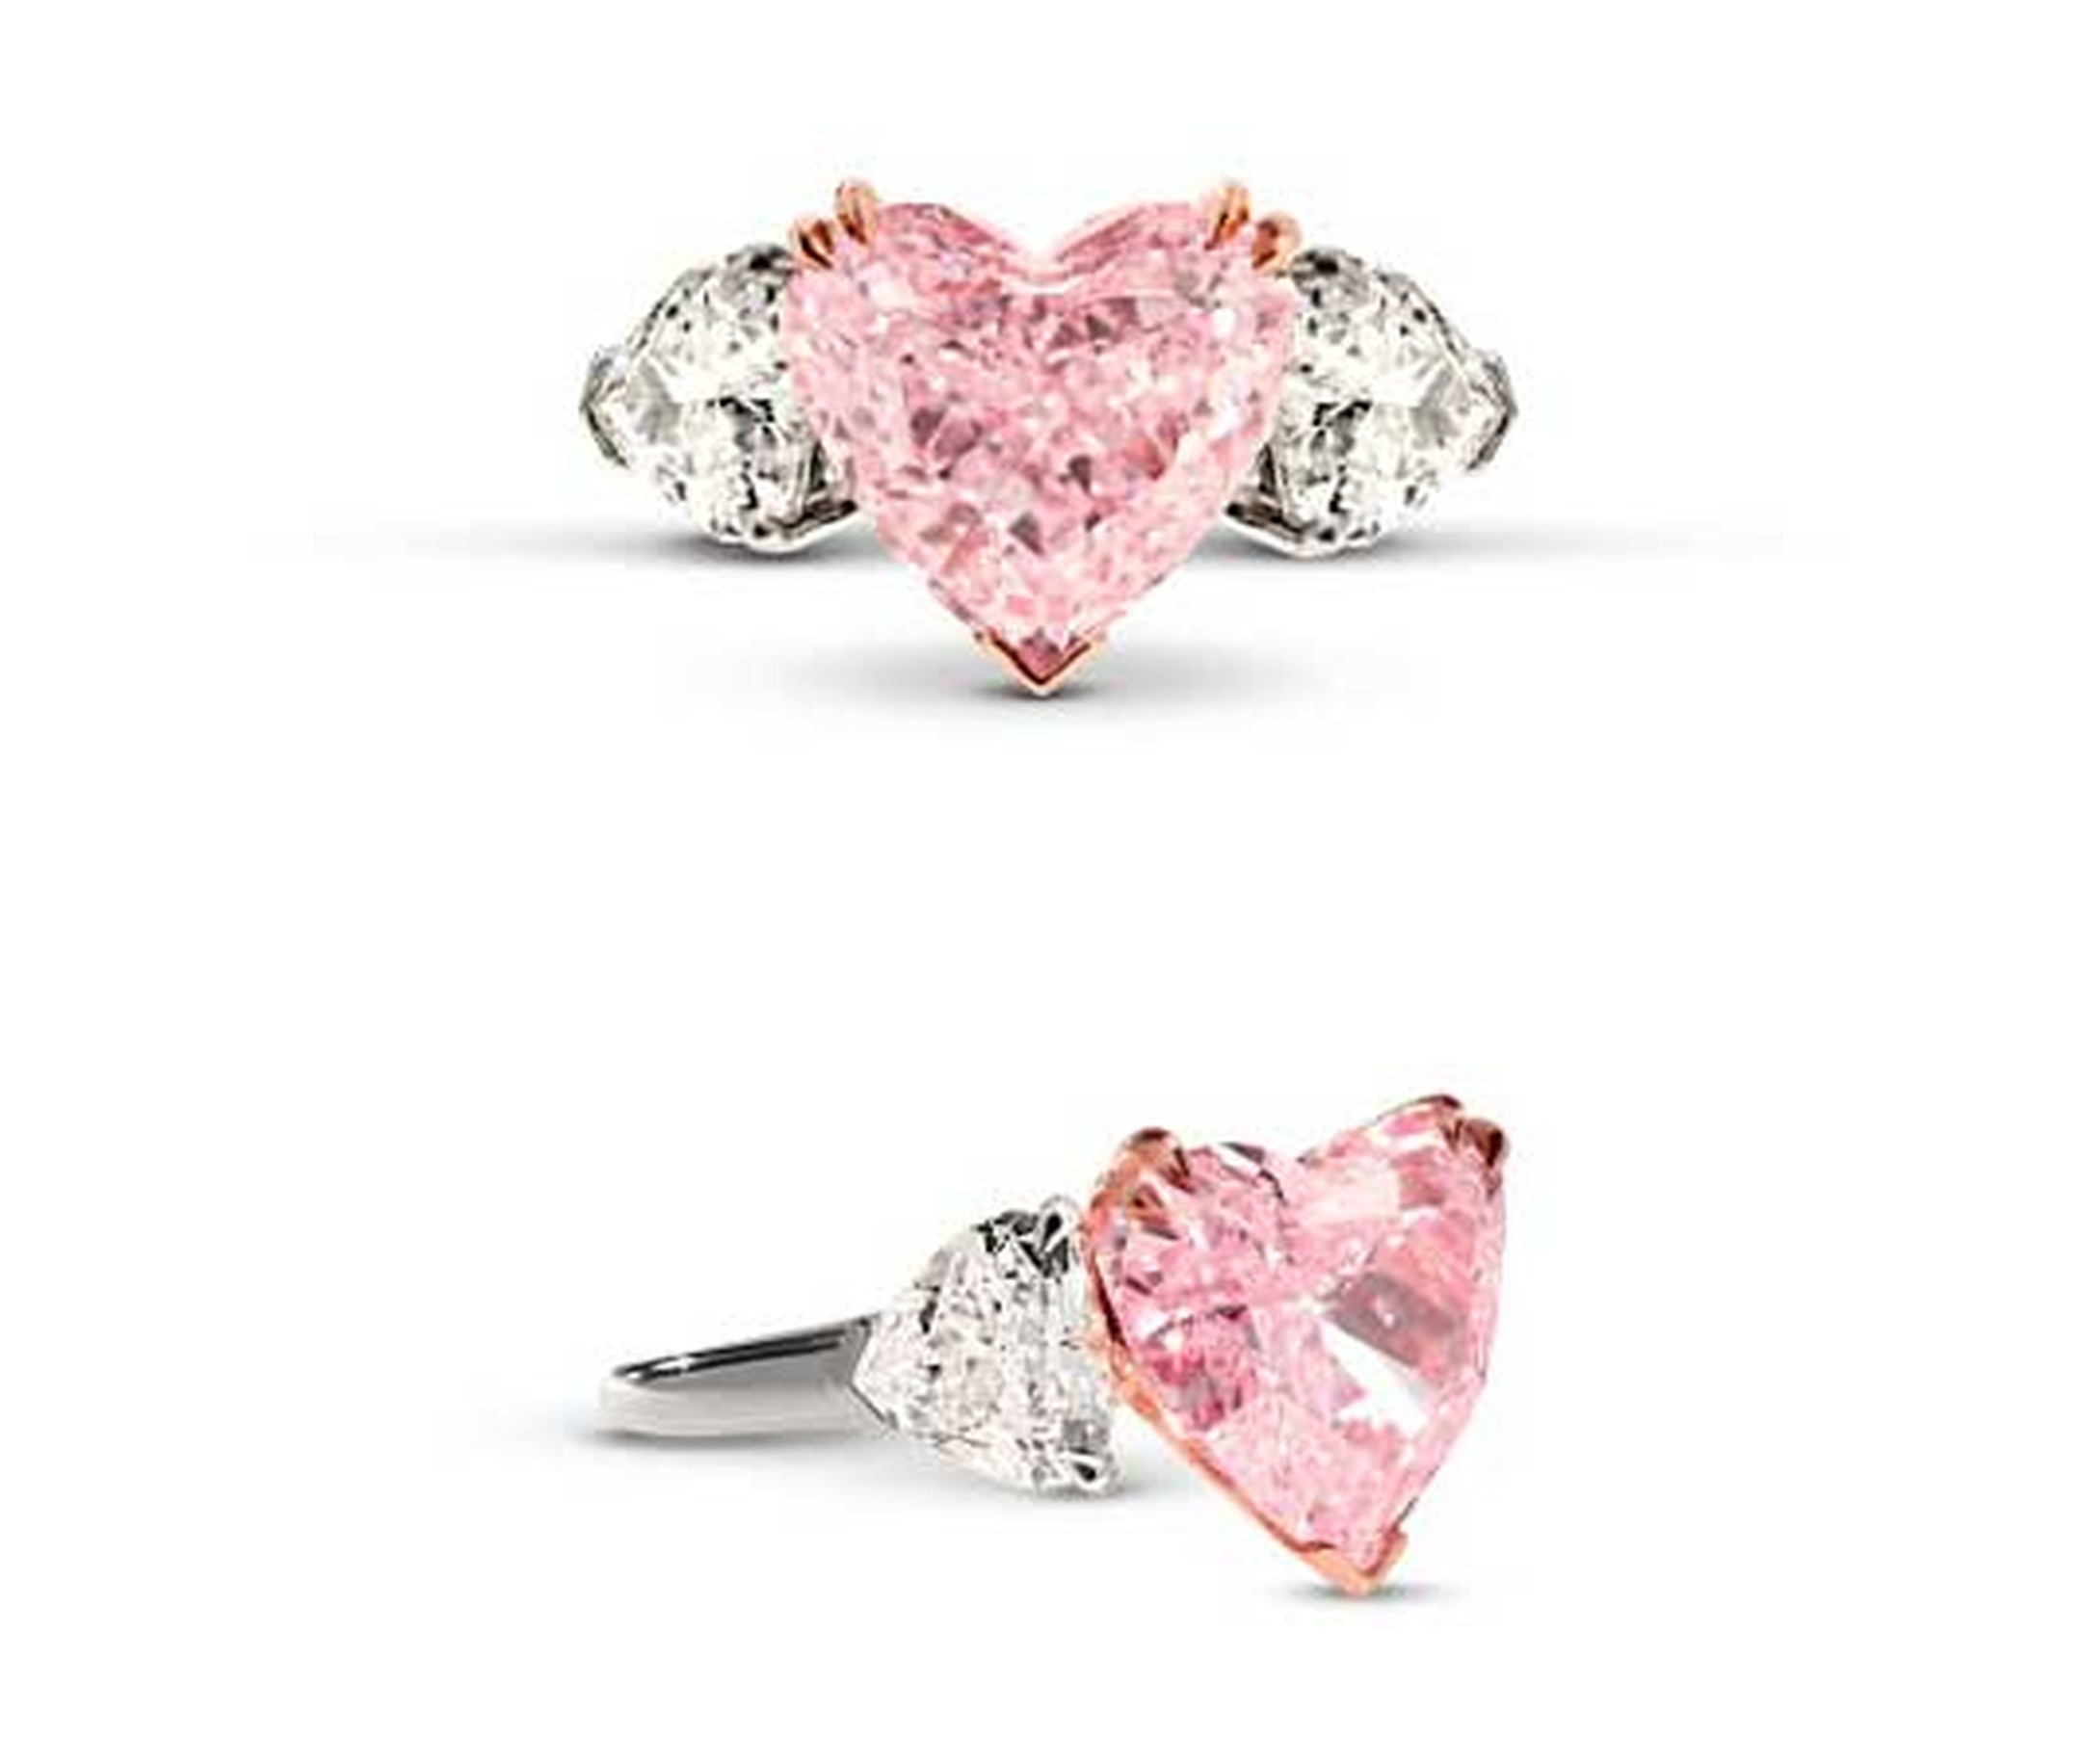 Star Diamond pink diamond engagement ring, set with a 5.32ct heart-shaped Intense pink diamond, flanked on either side by white diamonds.